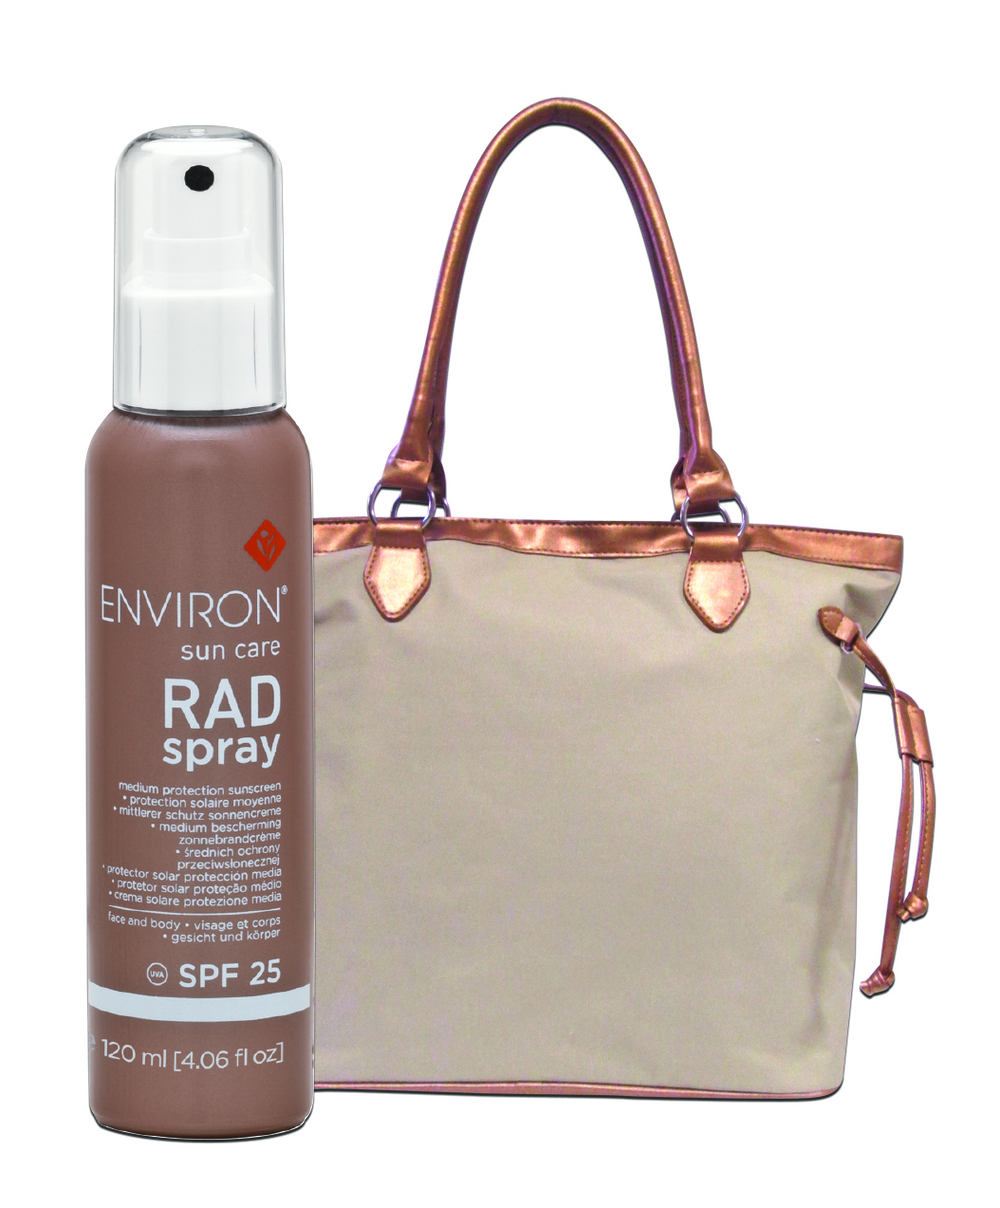 Environ RAD SPF 25 Spray